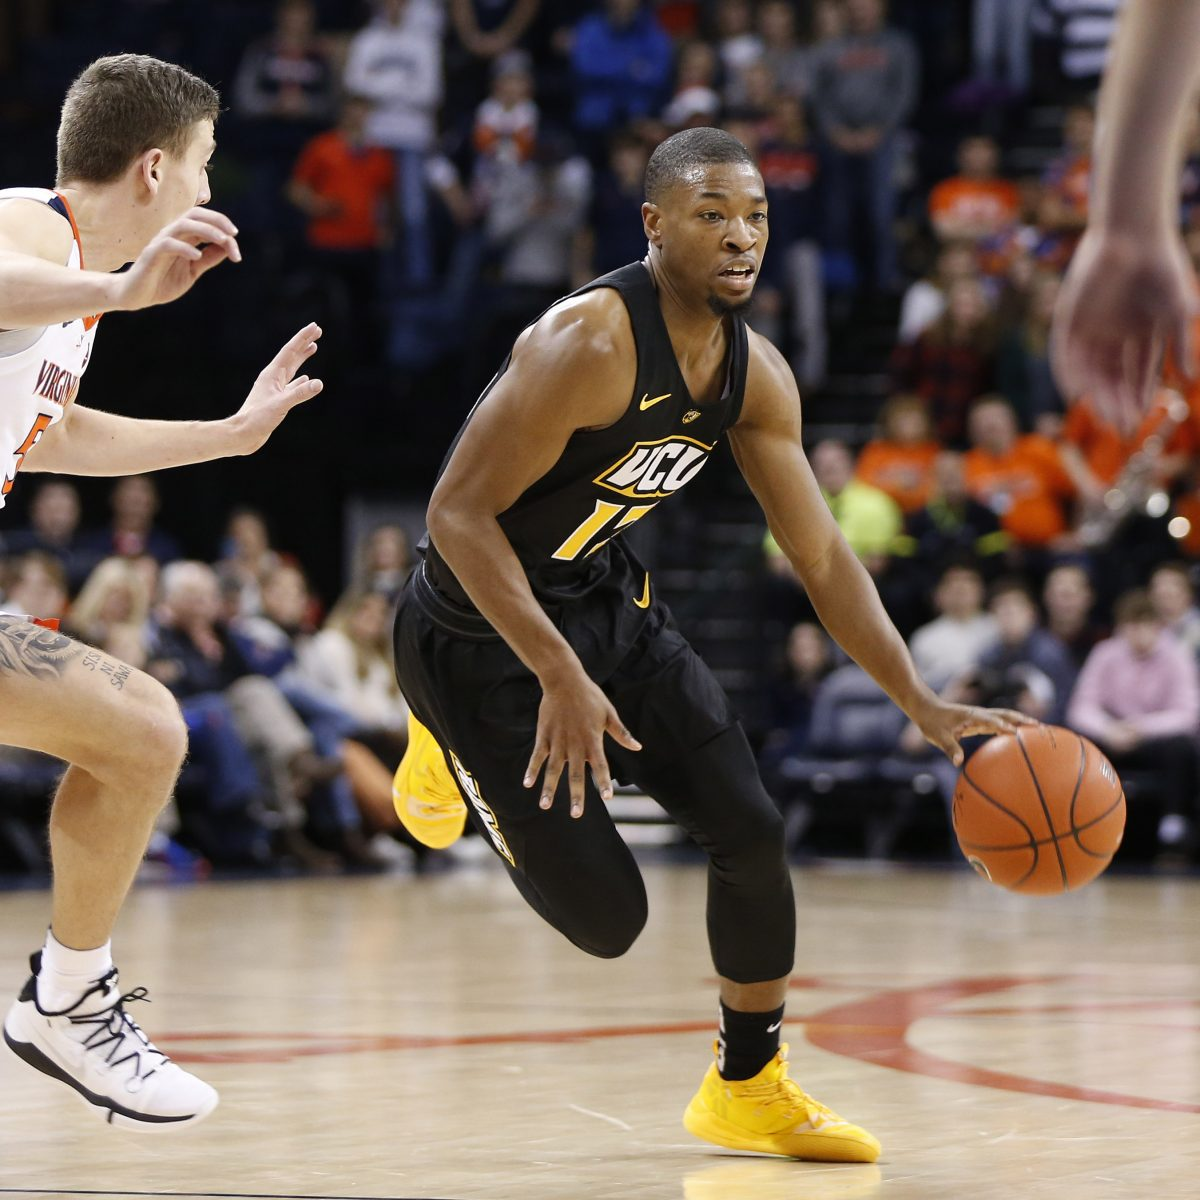 St Louis Vs Vcu Prediction Preview And Odds 2 26 2019